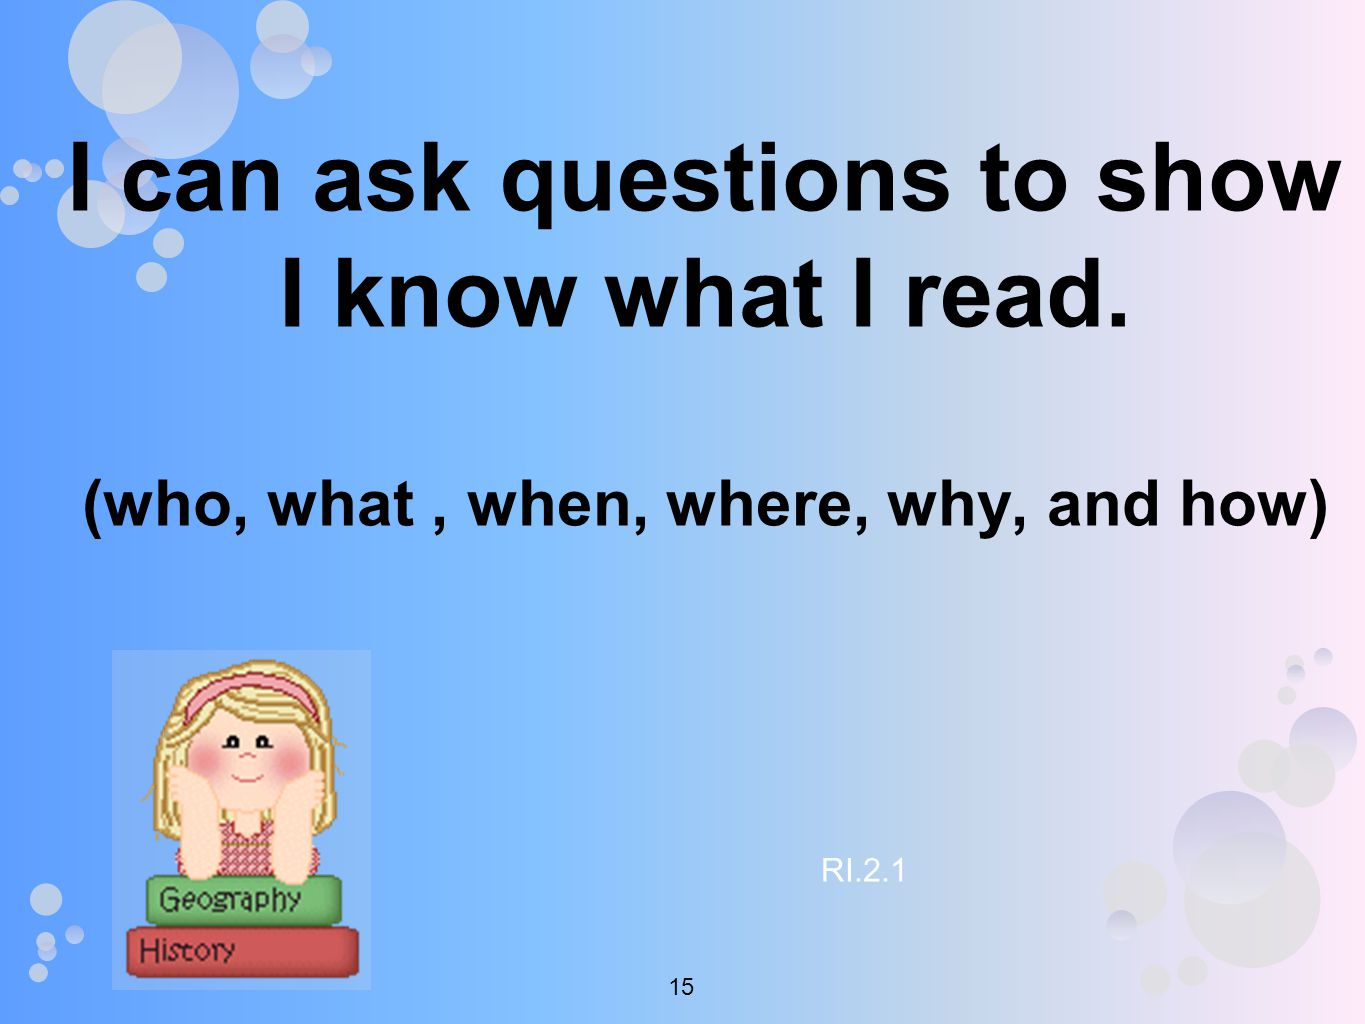 I can ask questions to show I know what I read. (who, what, when, where, why, and how) RI